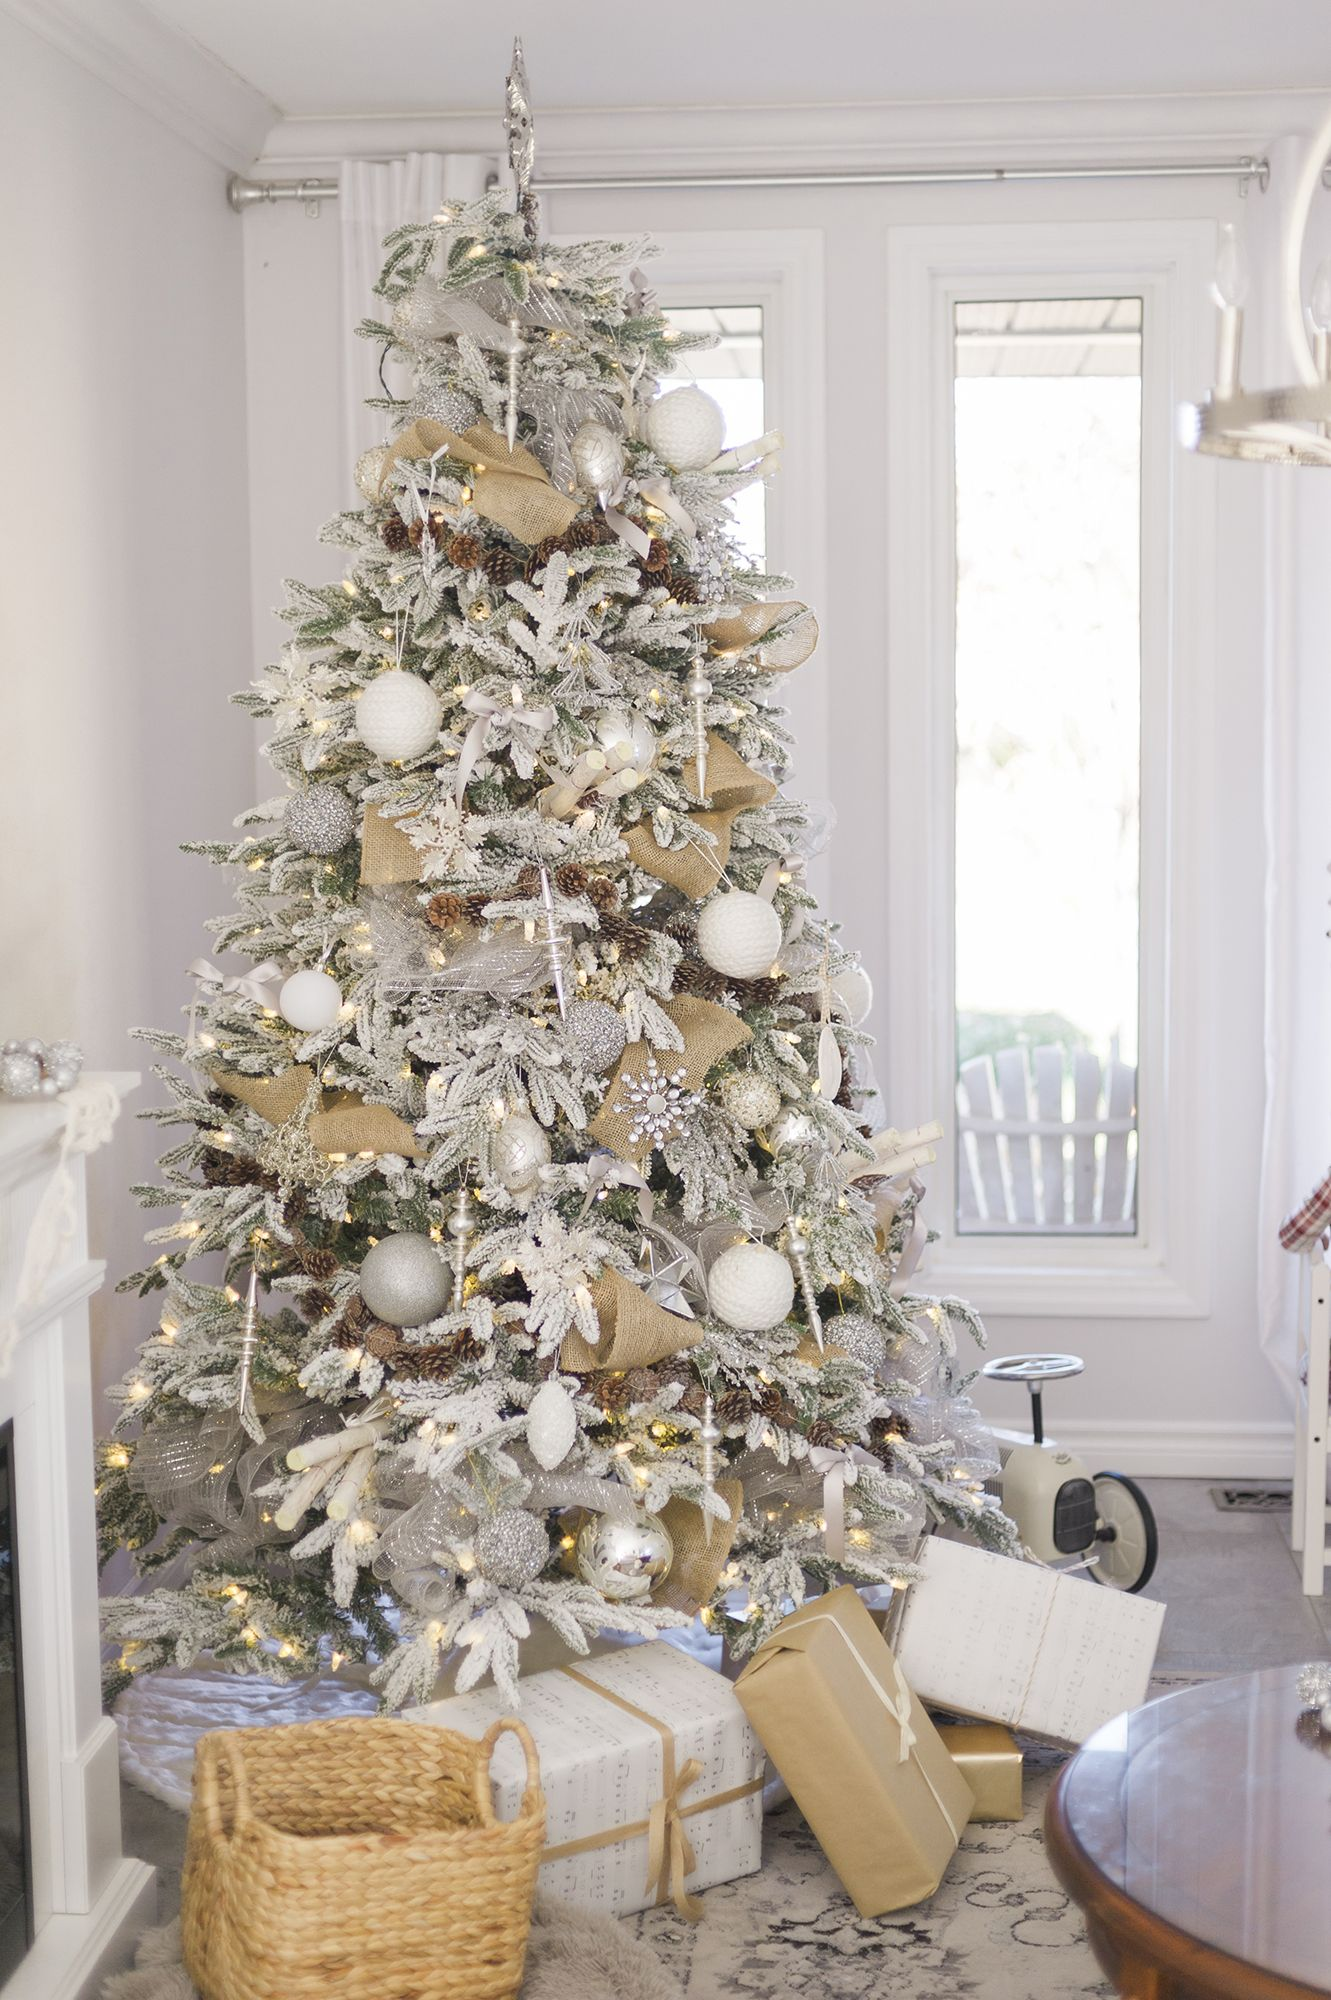 Frosted Christmas Tree Decorations  Christmas Tree Decorations 1 1505317317